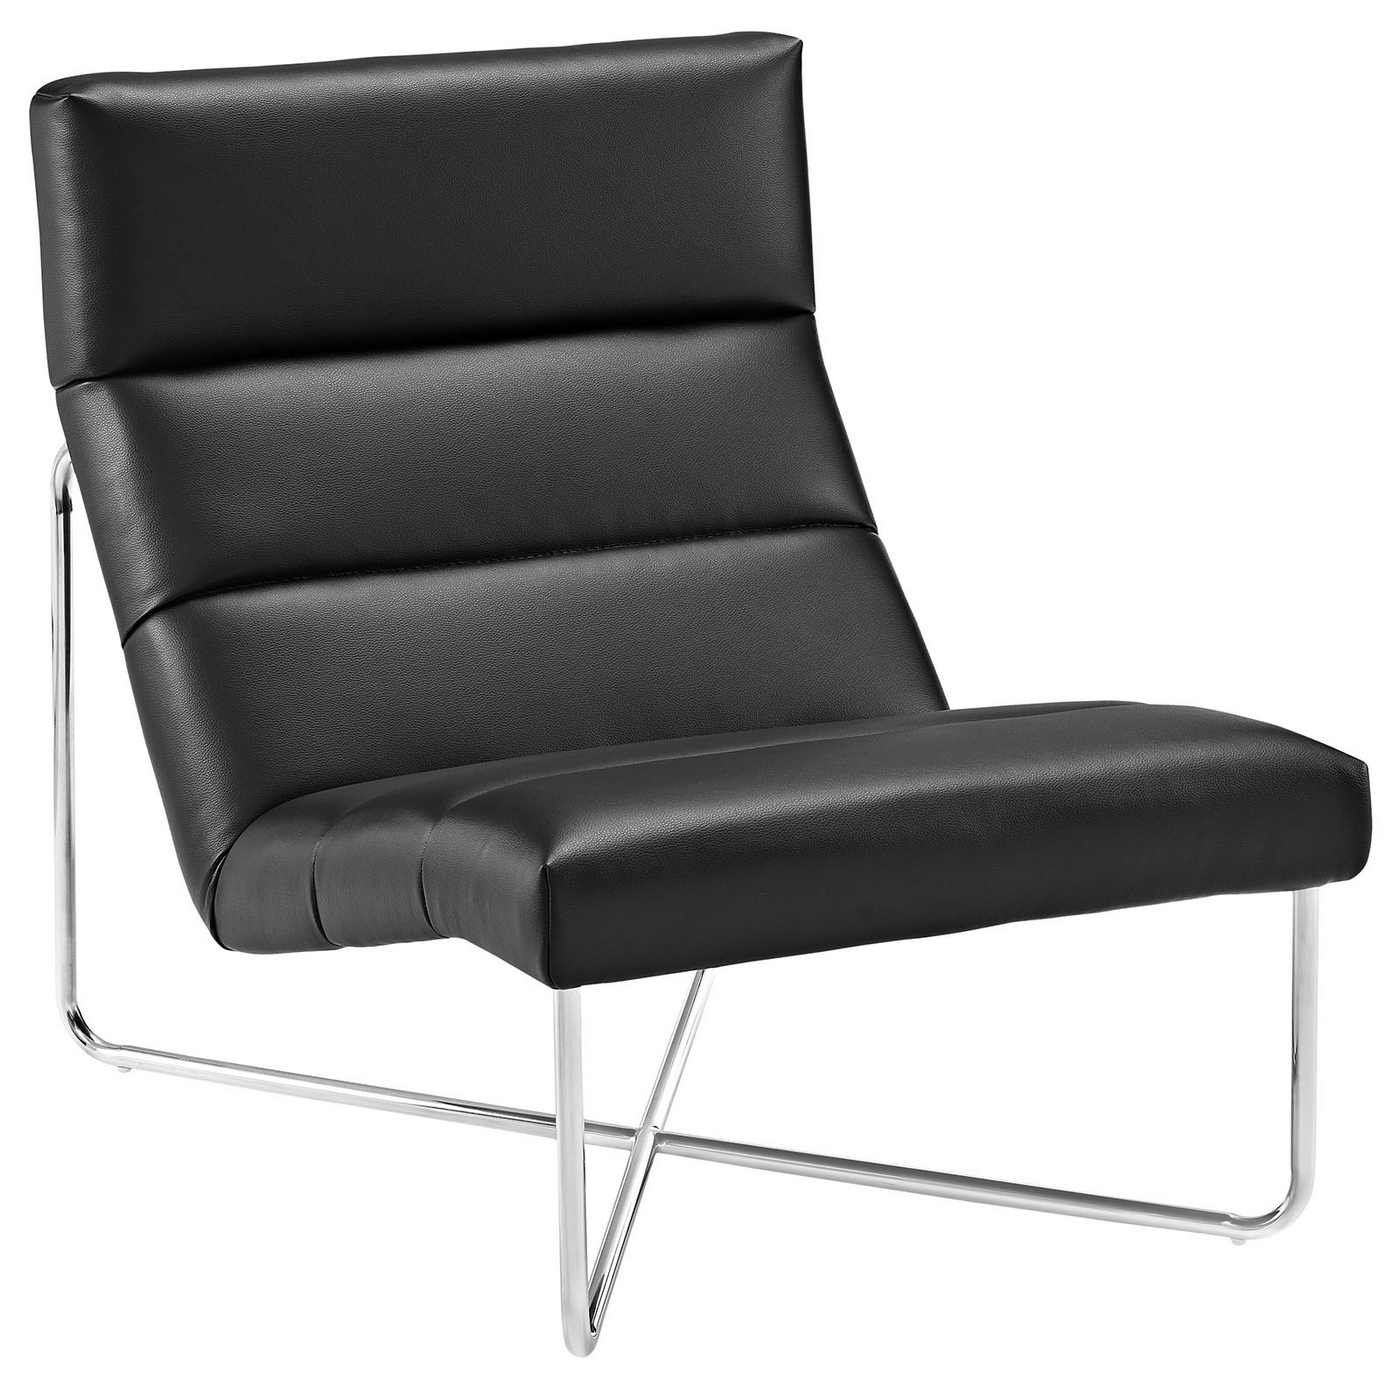 Reach Channel Tufted Vinyl Lounge Chair With Chrome Base